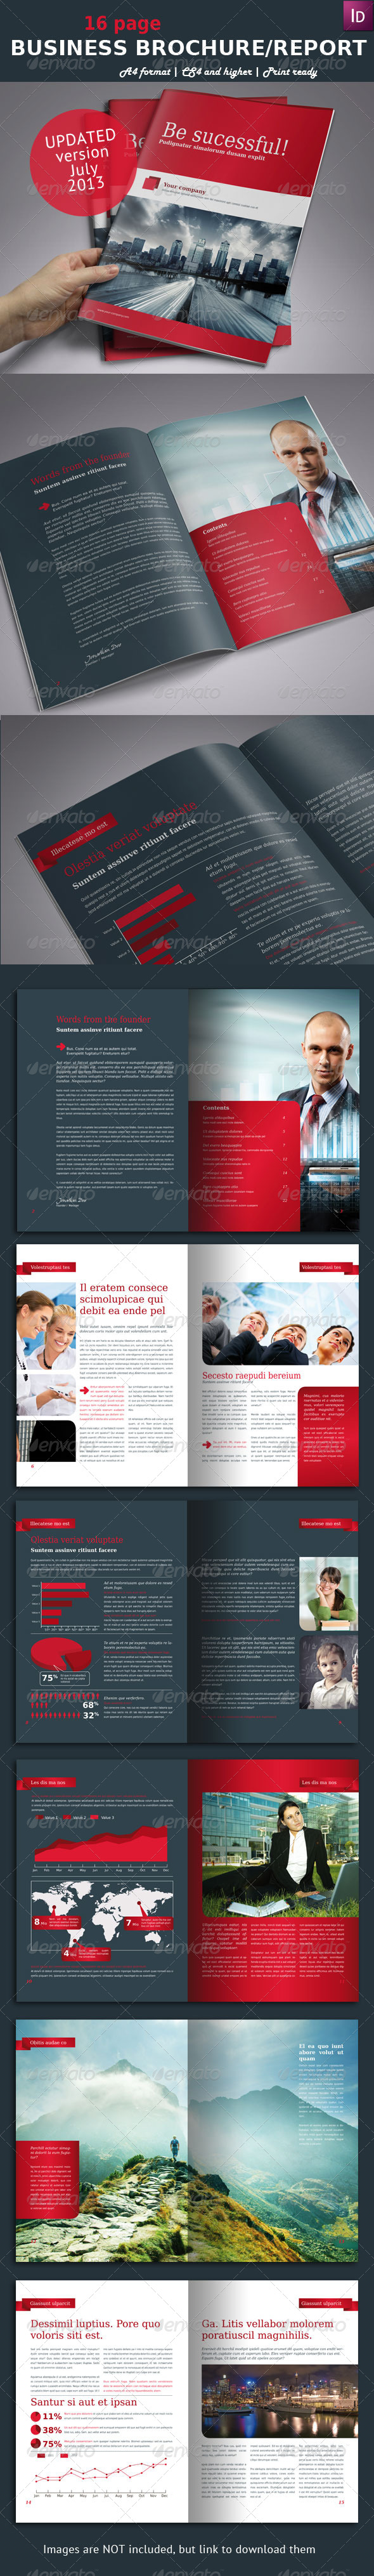 Business Brochure / Report A4 - Informational Brochures